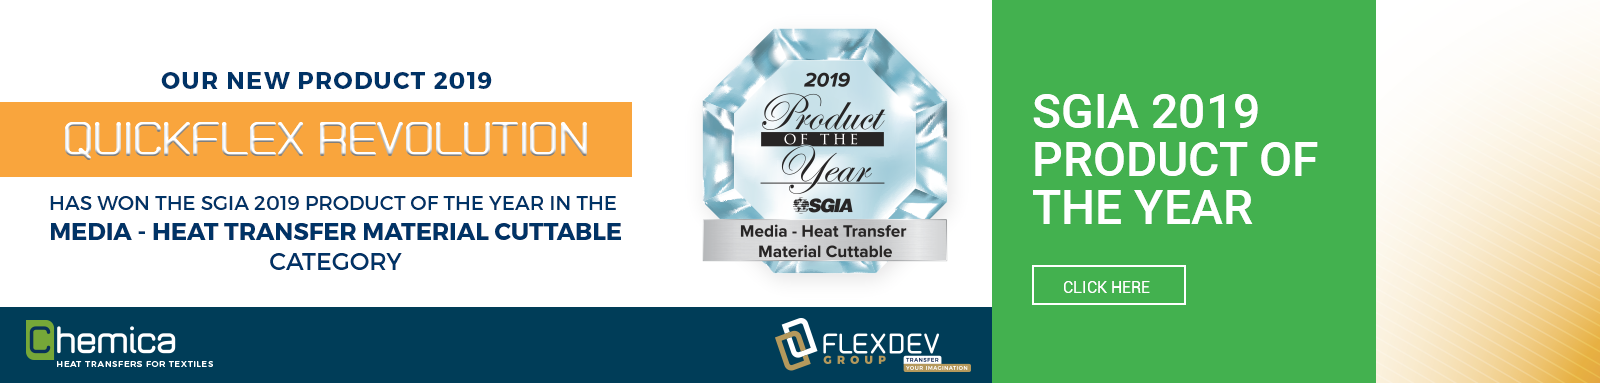 SGIA 2019 Product of the Year